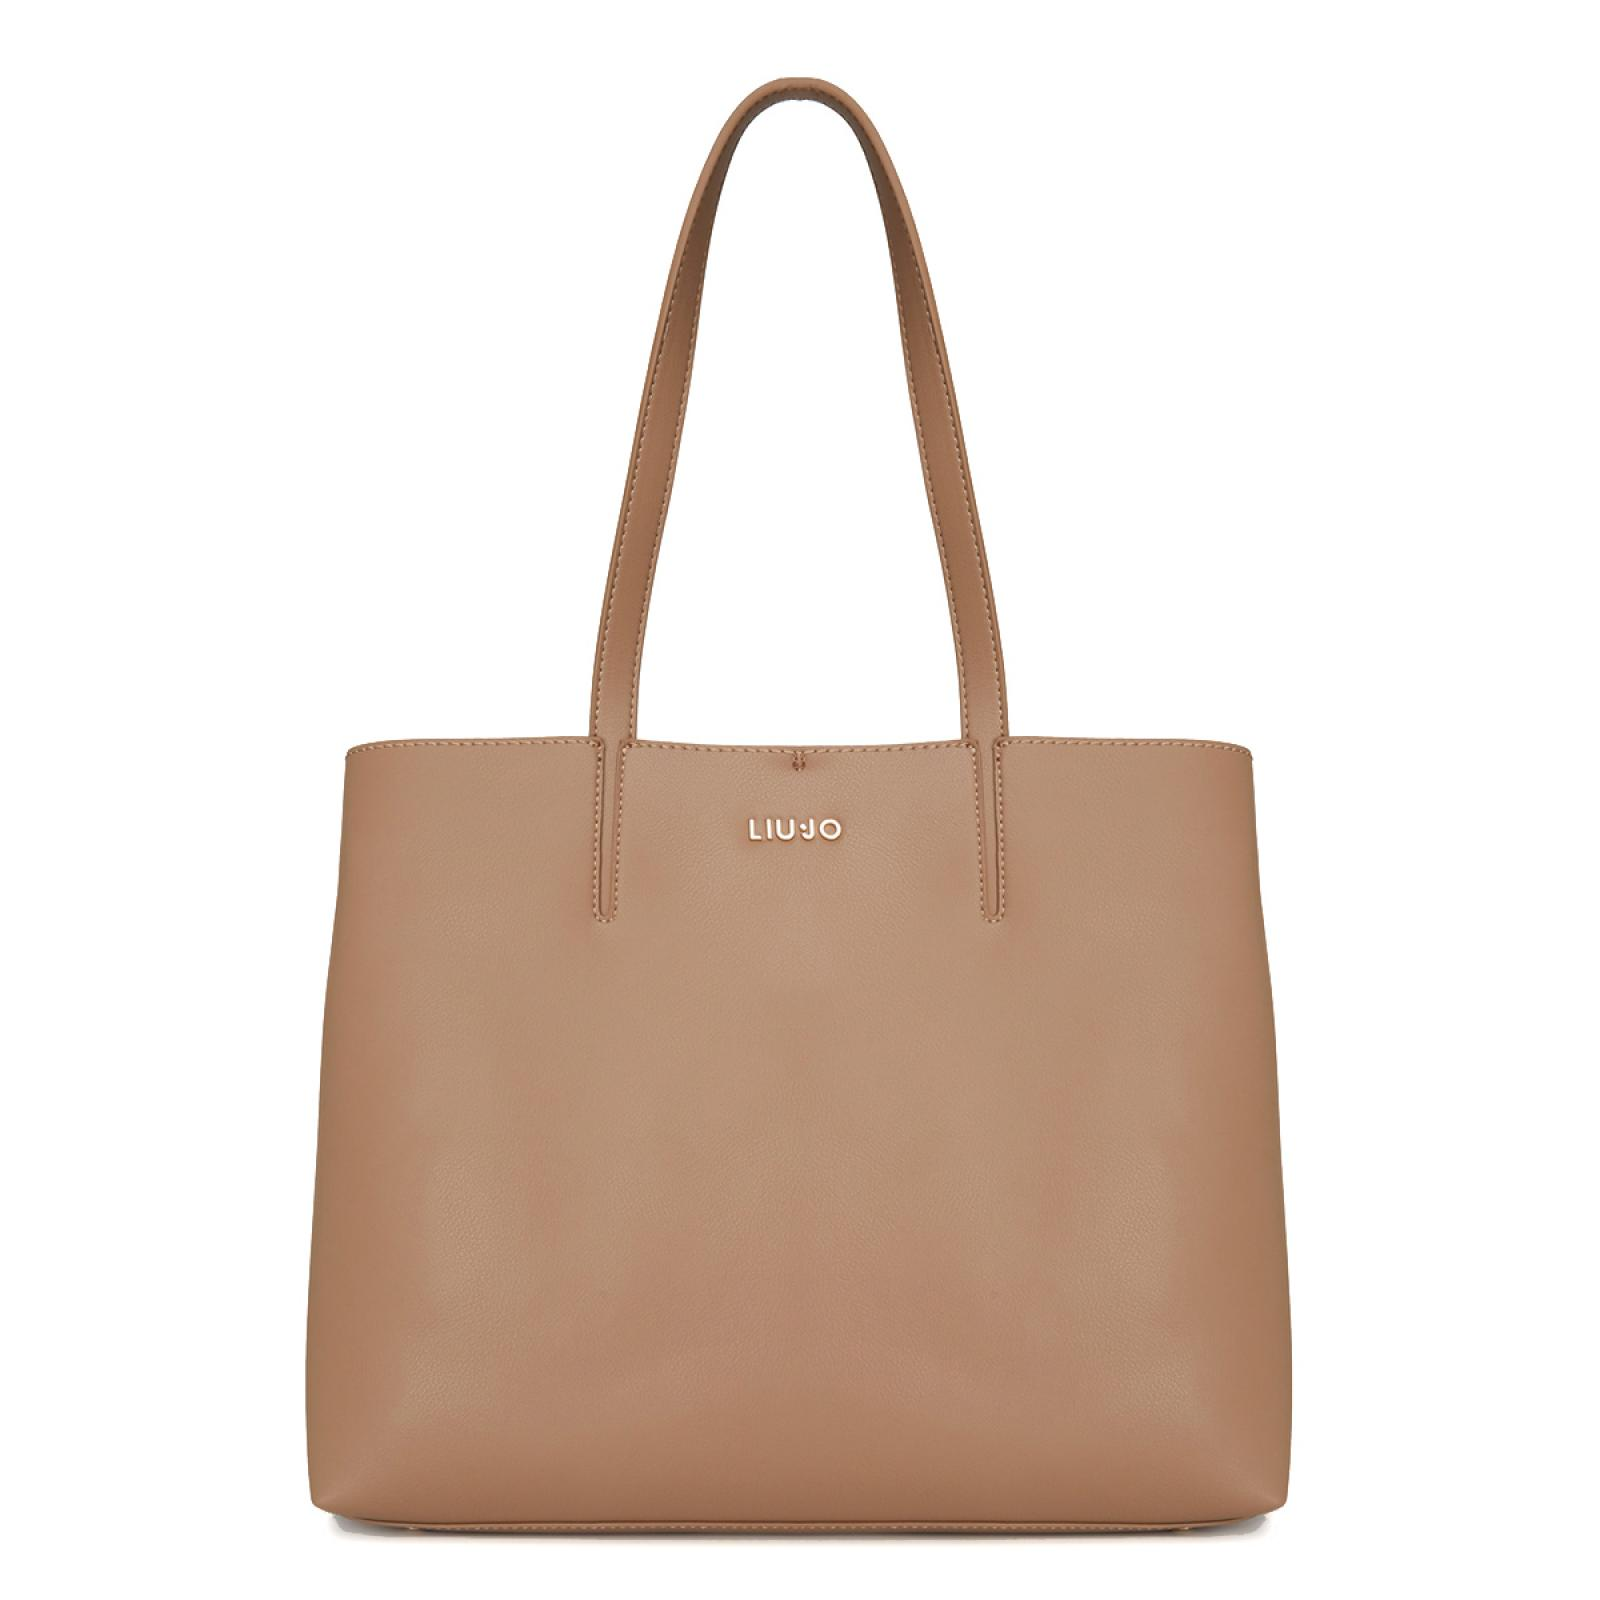 Liu Jo Shopping Bag con interno stampato - 1